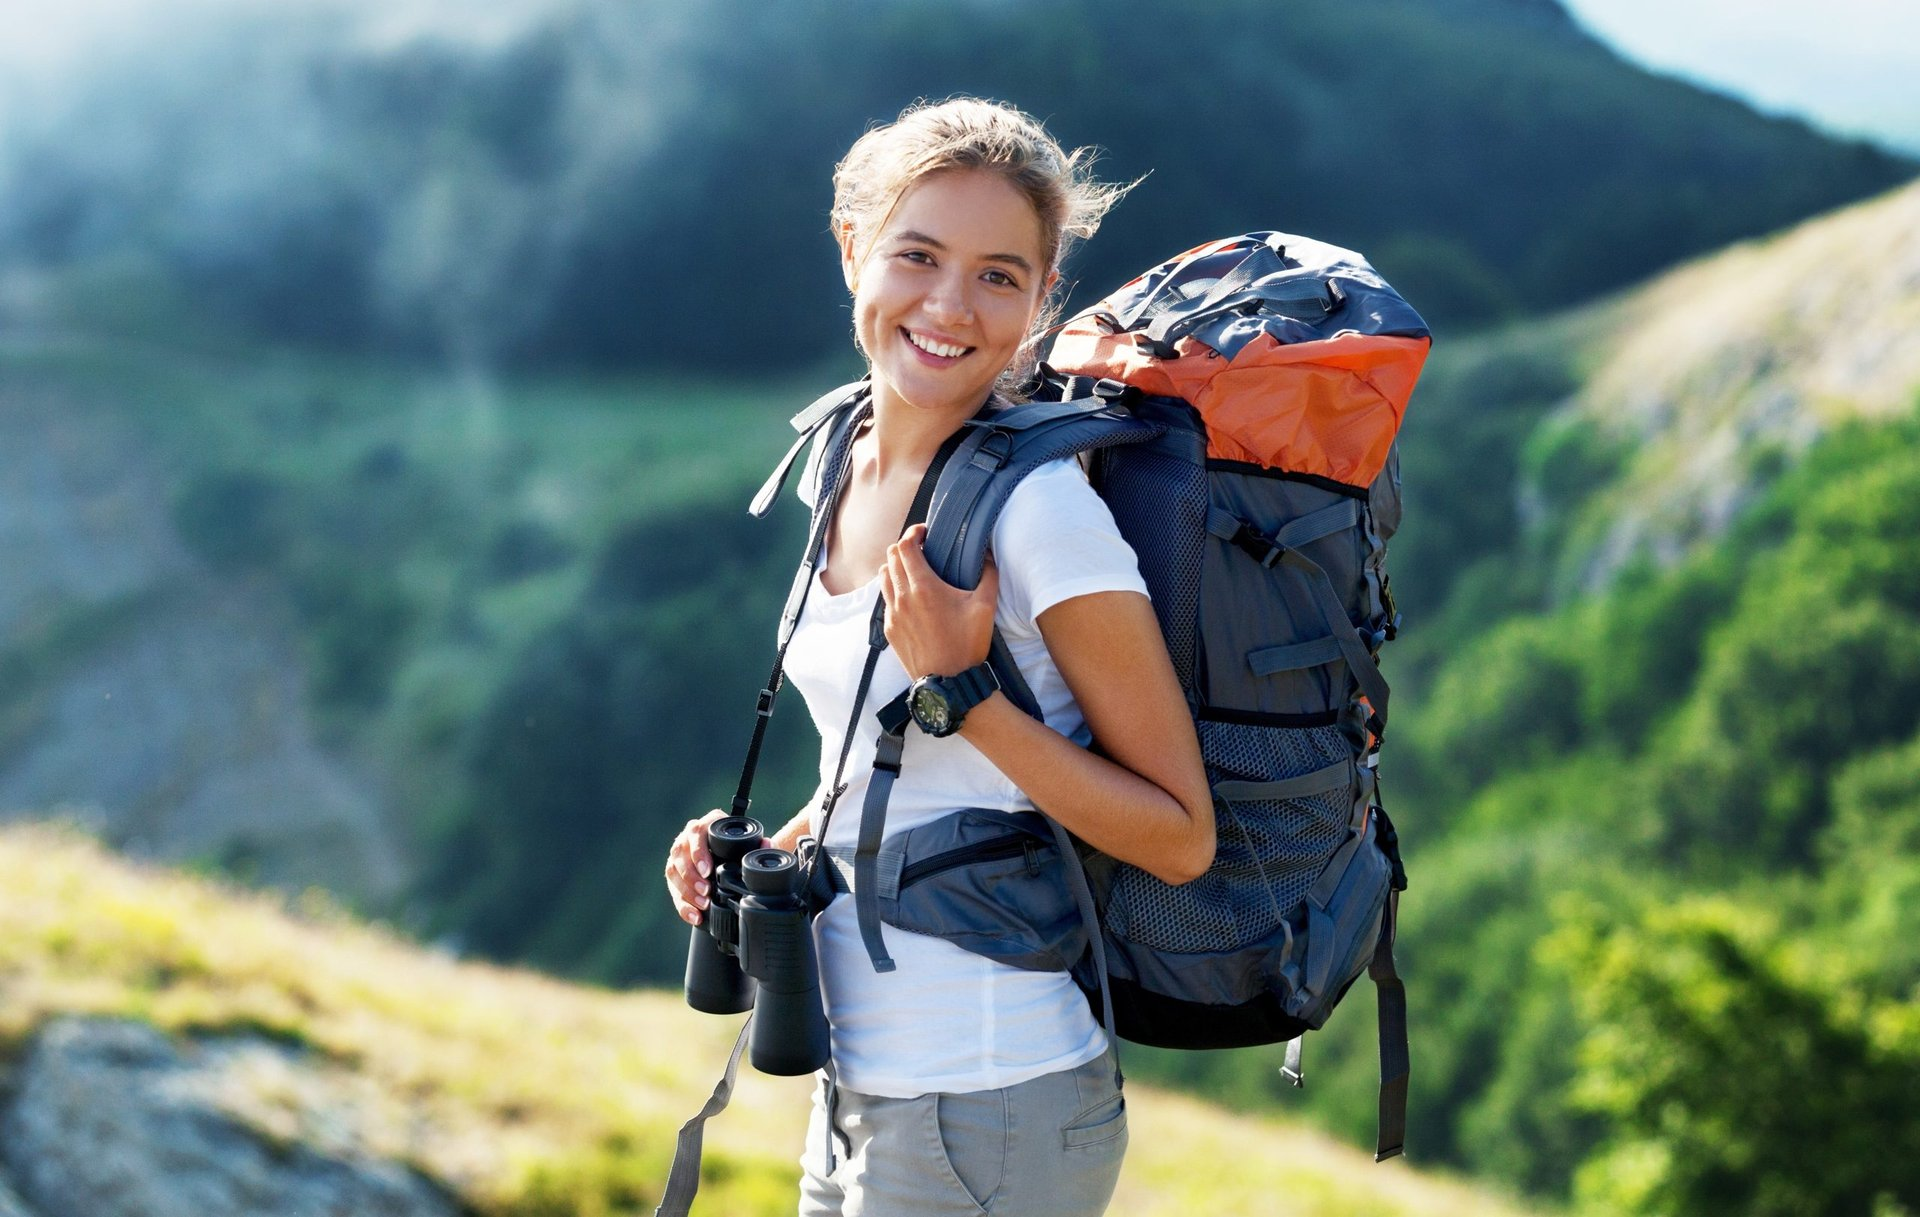 Traveler hiking with a backpack